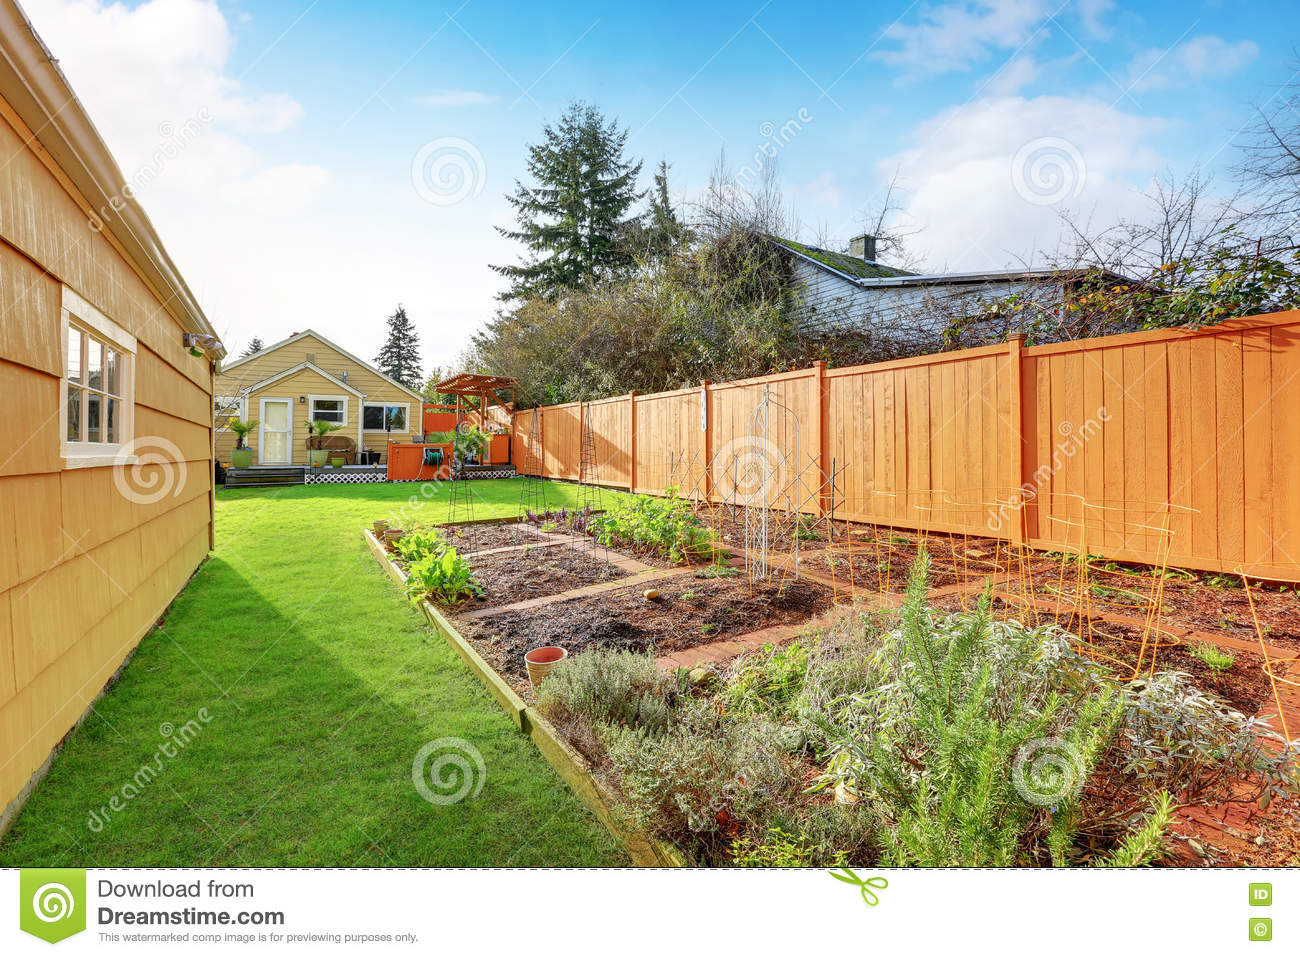 Small Vegetable Garden With Risen Beds In The Fenced inside Fenced In Backyard